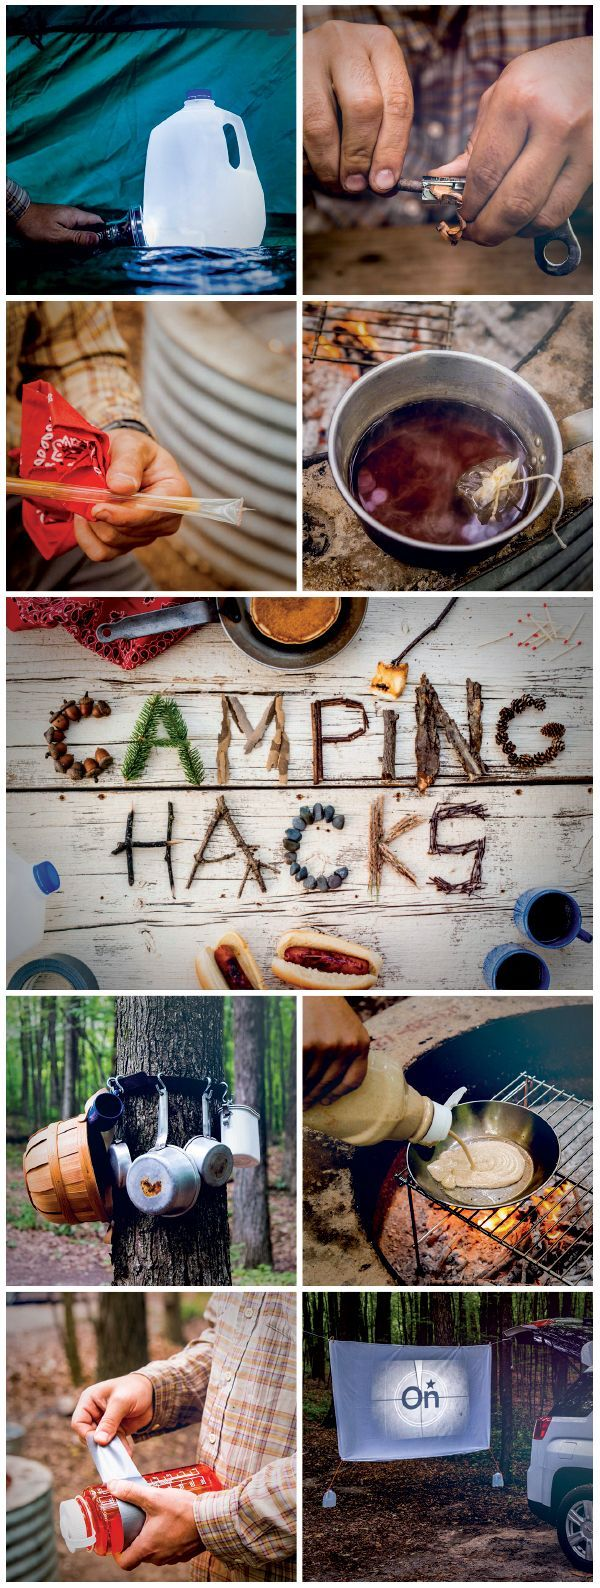 #Camping #tips and tricks that will change the way you #camp forever! See them here a list of great camping hacks!